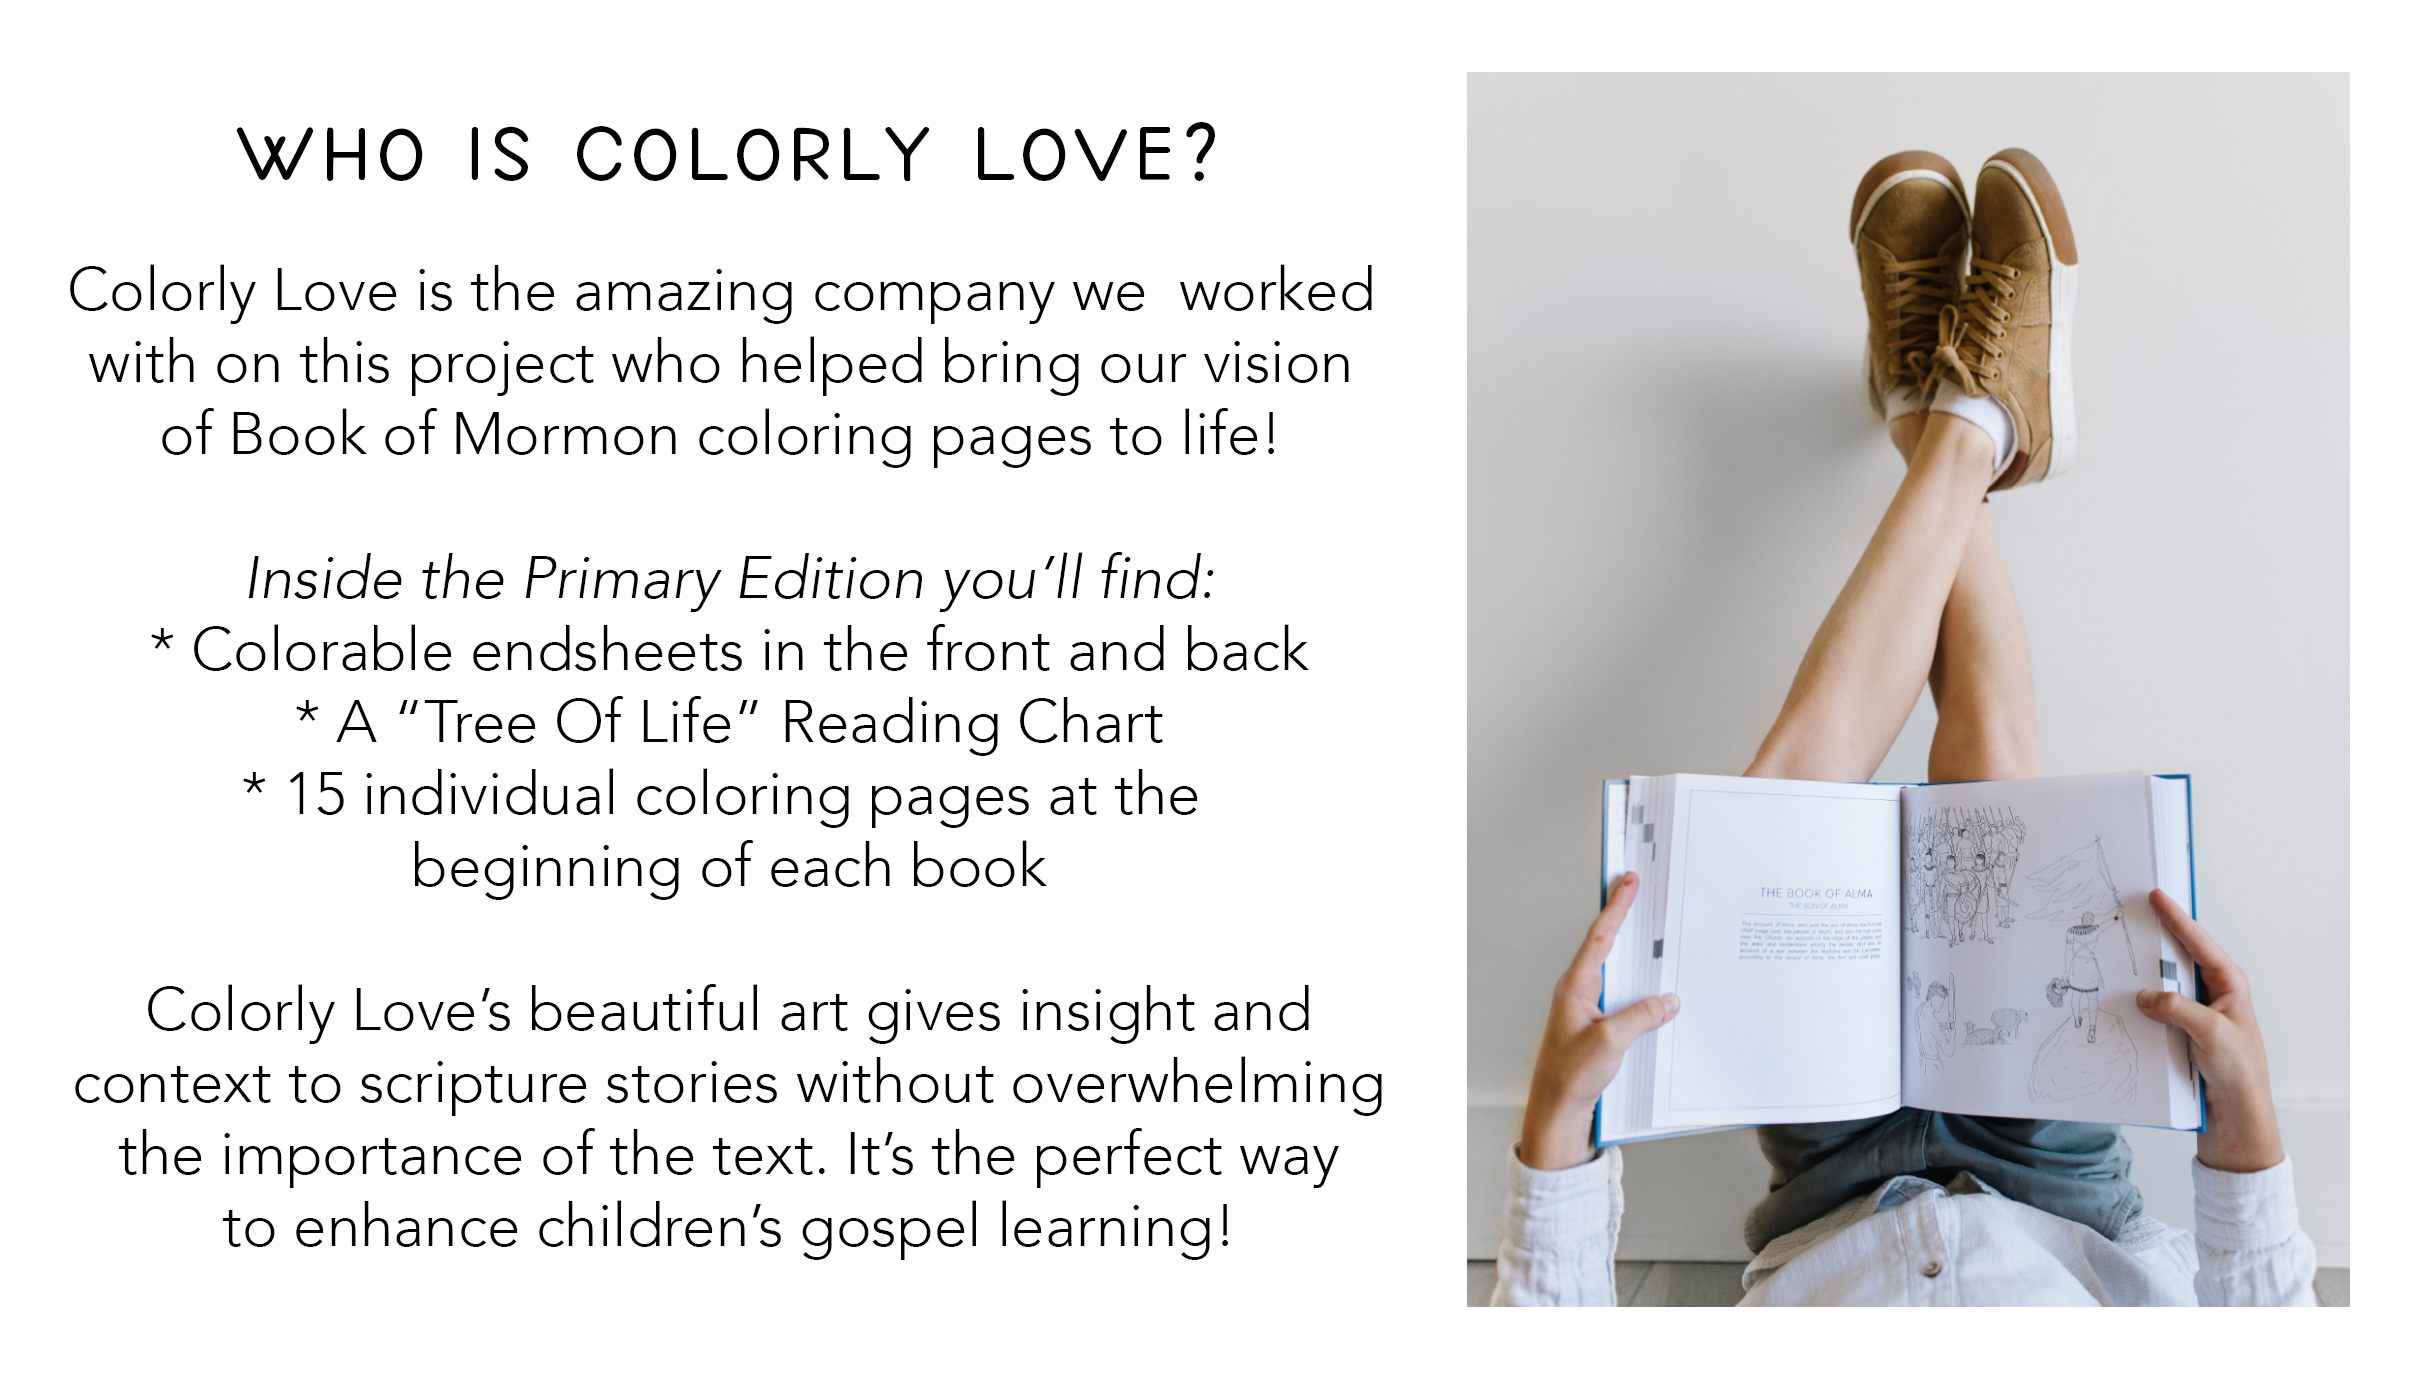 "Colorly Love is the amazing company we  worked  with on this project who helped bring our vision  of Book of Mormon coloring pages to life!   Inside the Primary Edition you'll find: * Colorable endsheets in the front and back * A ""Tree Of Life"" Reading Chart * 15 individual coloring pages at the  beginning of each book  Colorly Love's beautiful art gives insight and context to scripture stories without overwhelming the importance of the text. It's the perfect way to enhance children's gospel learning!"